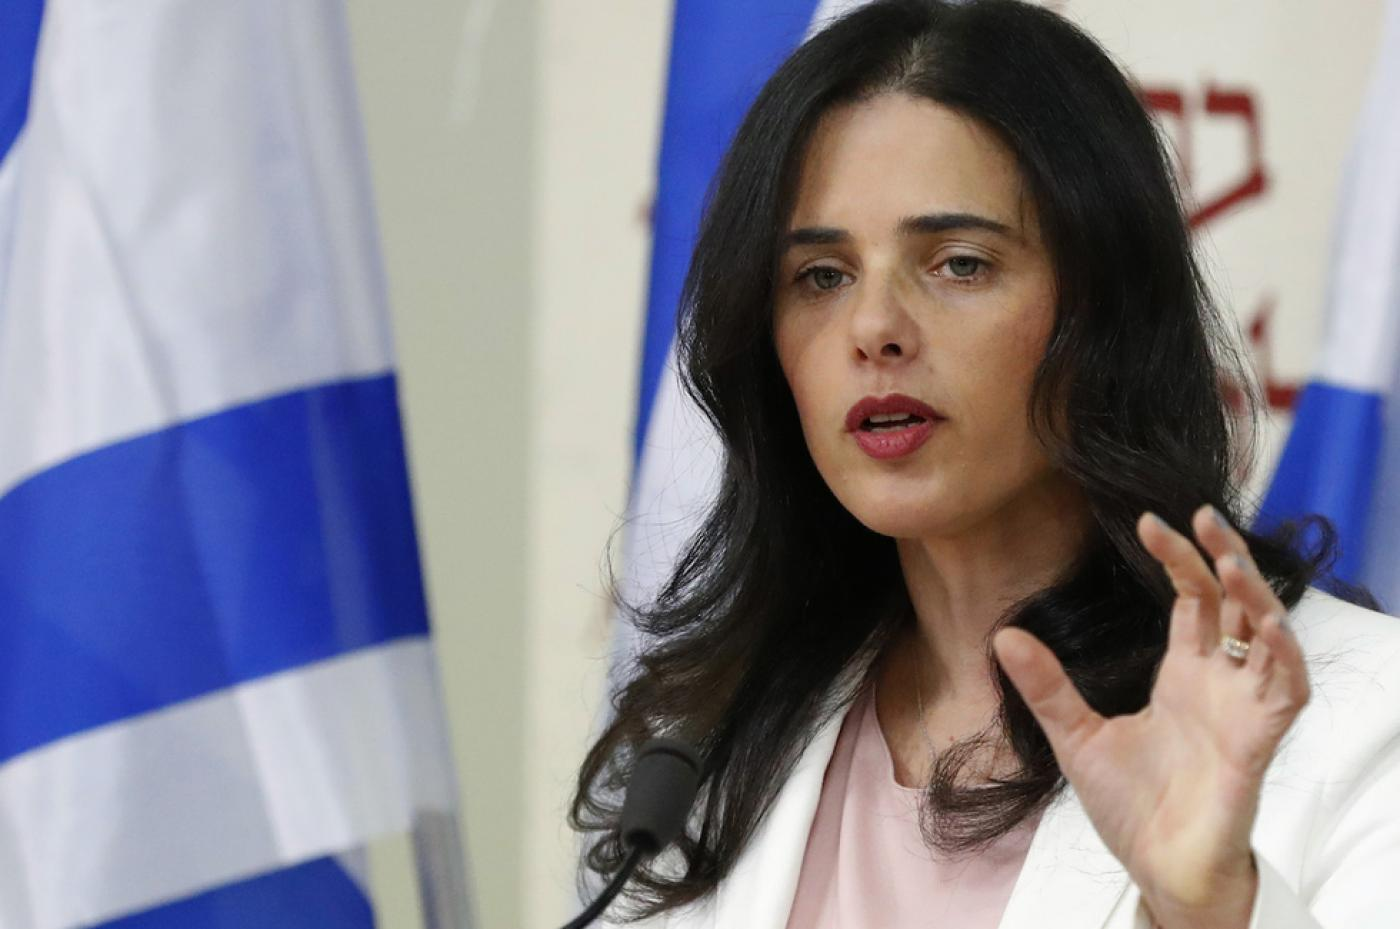 Israeli press review: Ayelet Shaked attempts to seize the far right |  Middle East Eye